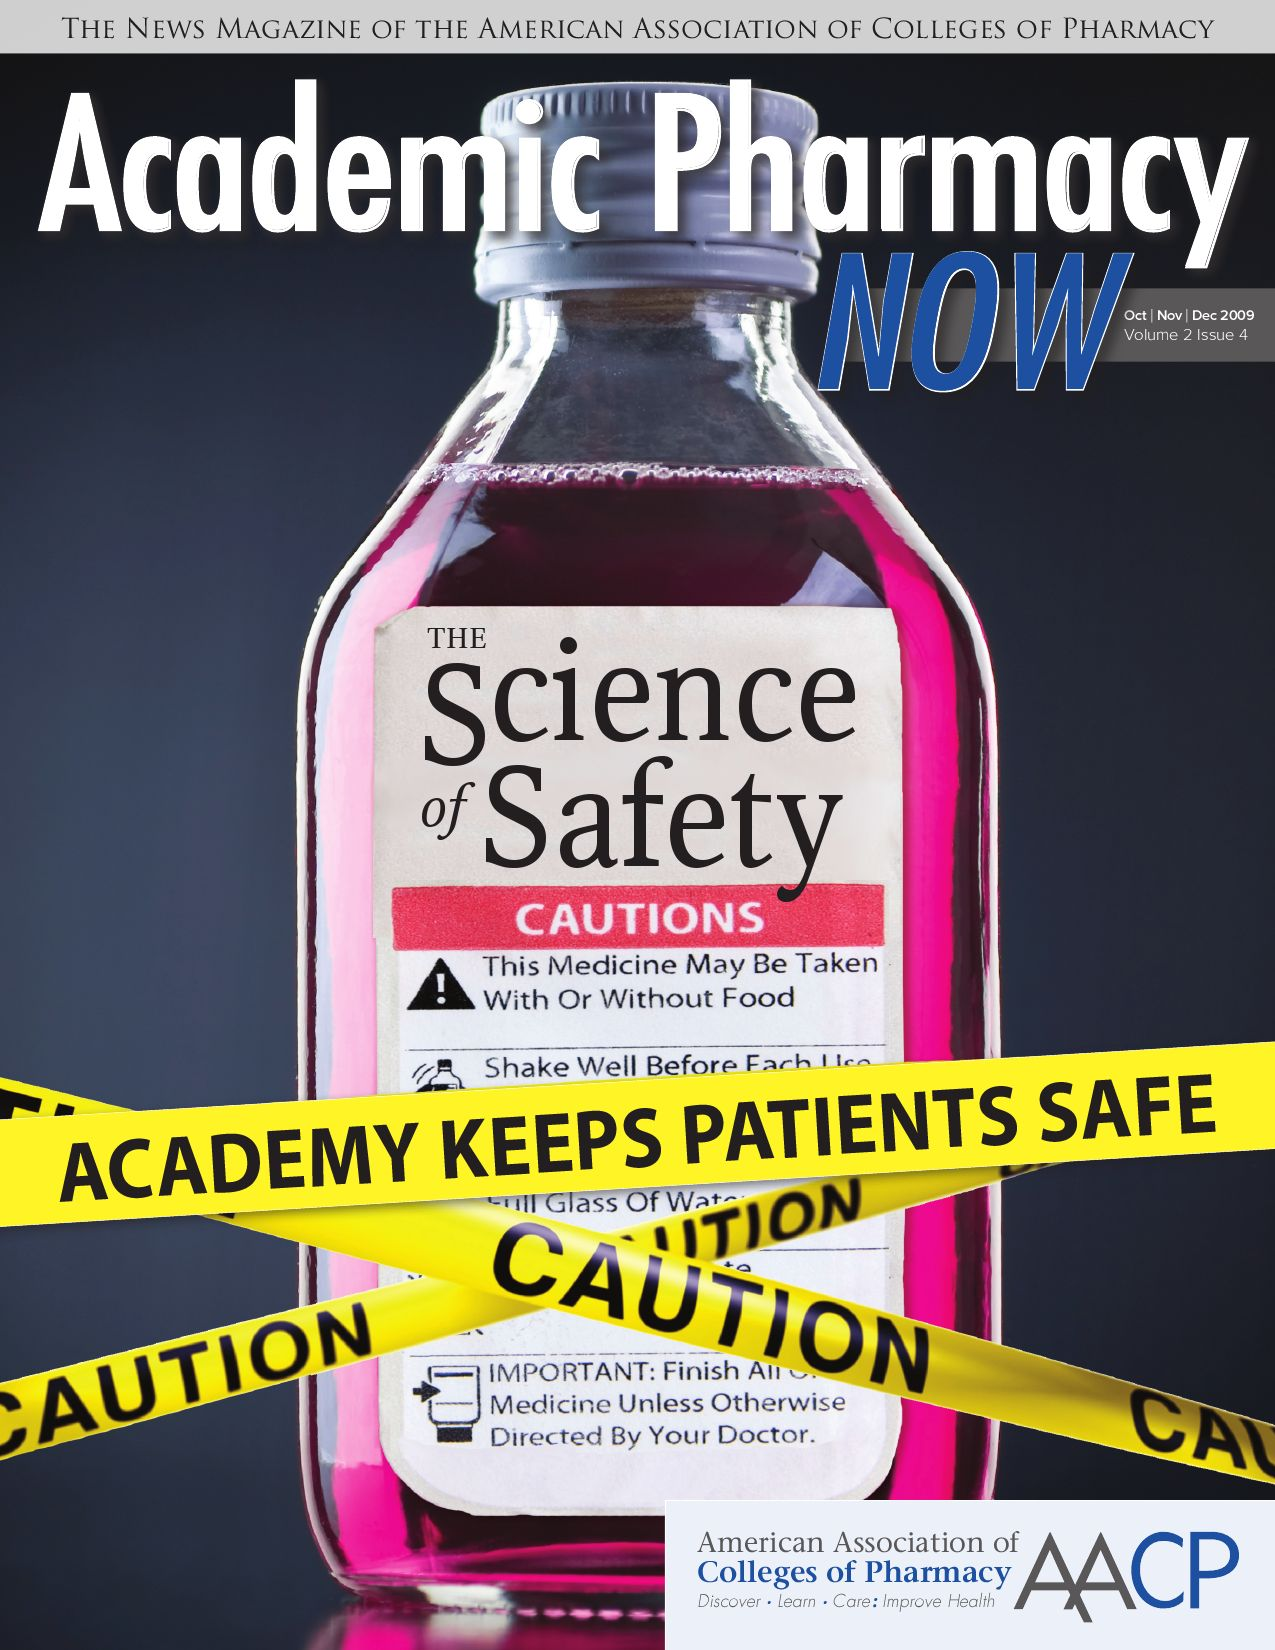 Academic Pharmacy Now Oct Nov Dec 2009 by AACP issuu